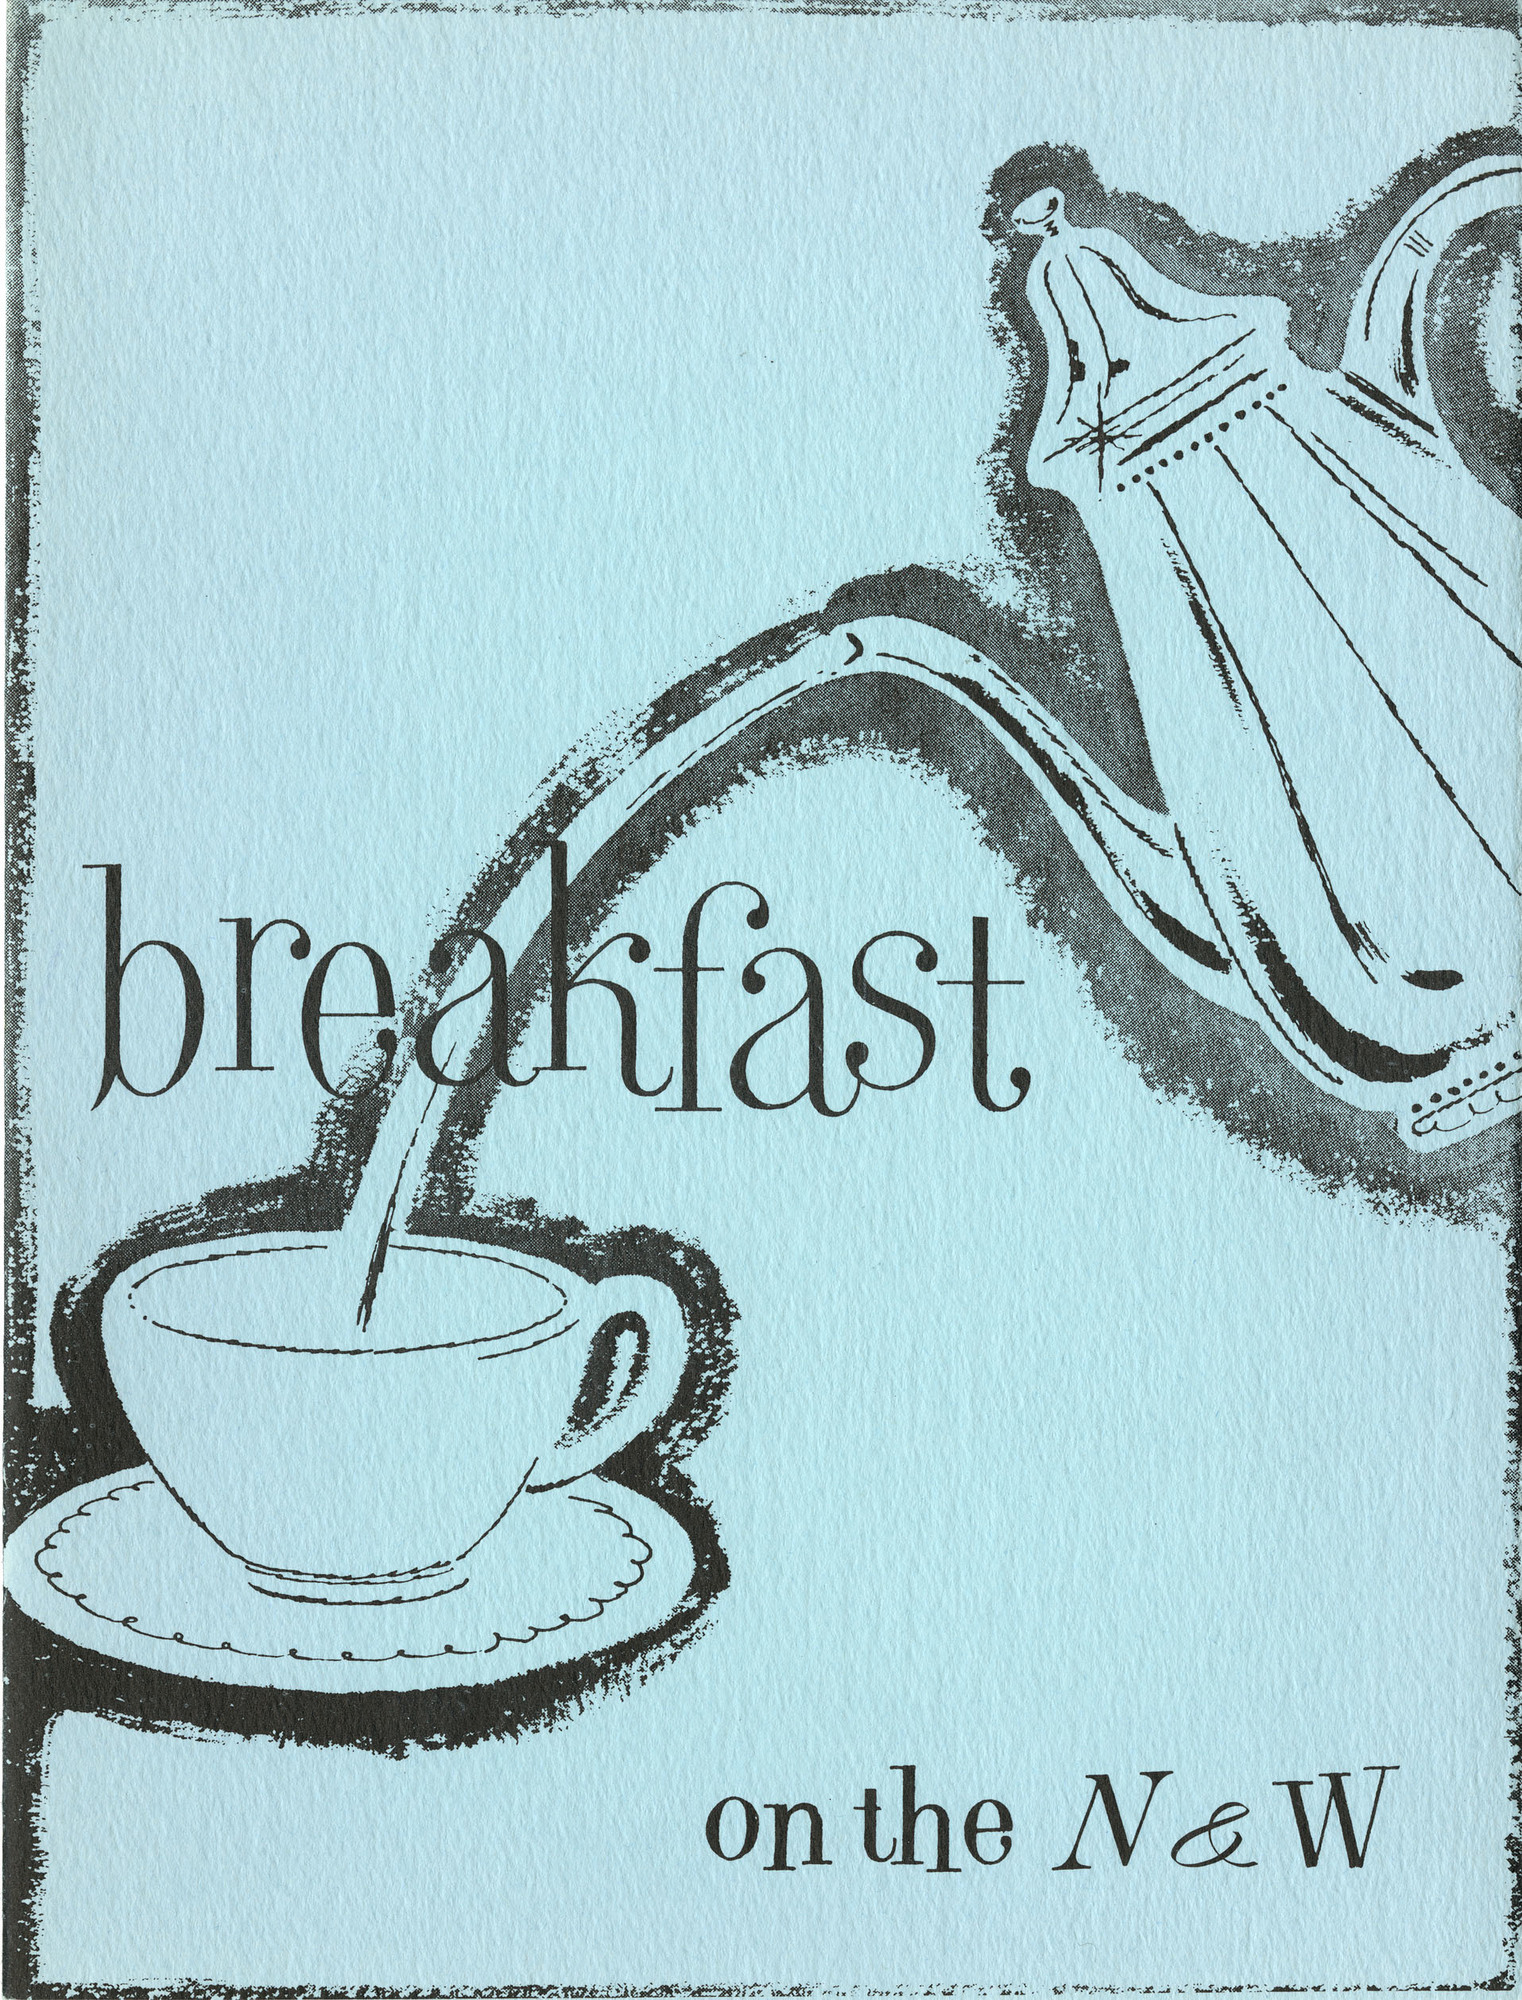 Ms2013_080_NWMenus_Breakfast_1a.jpg